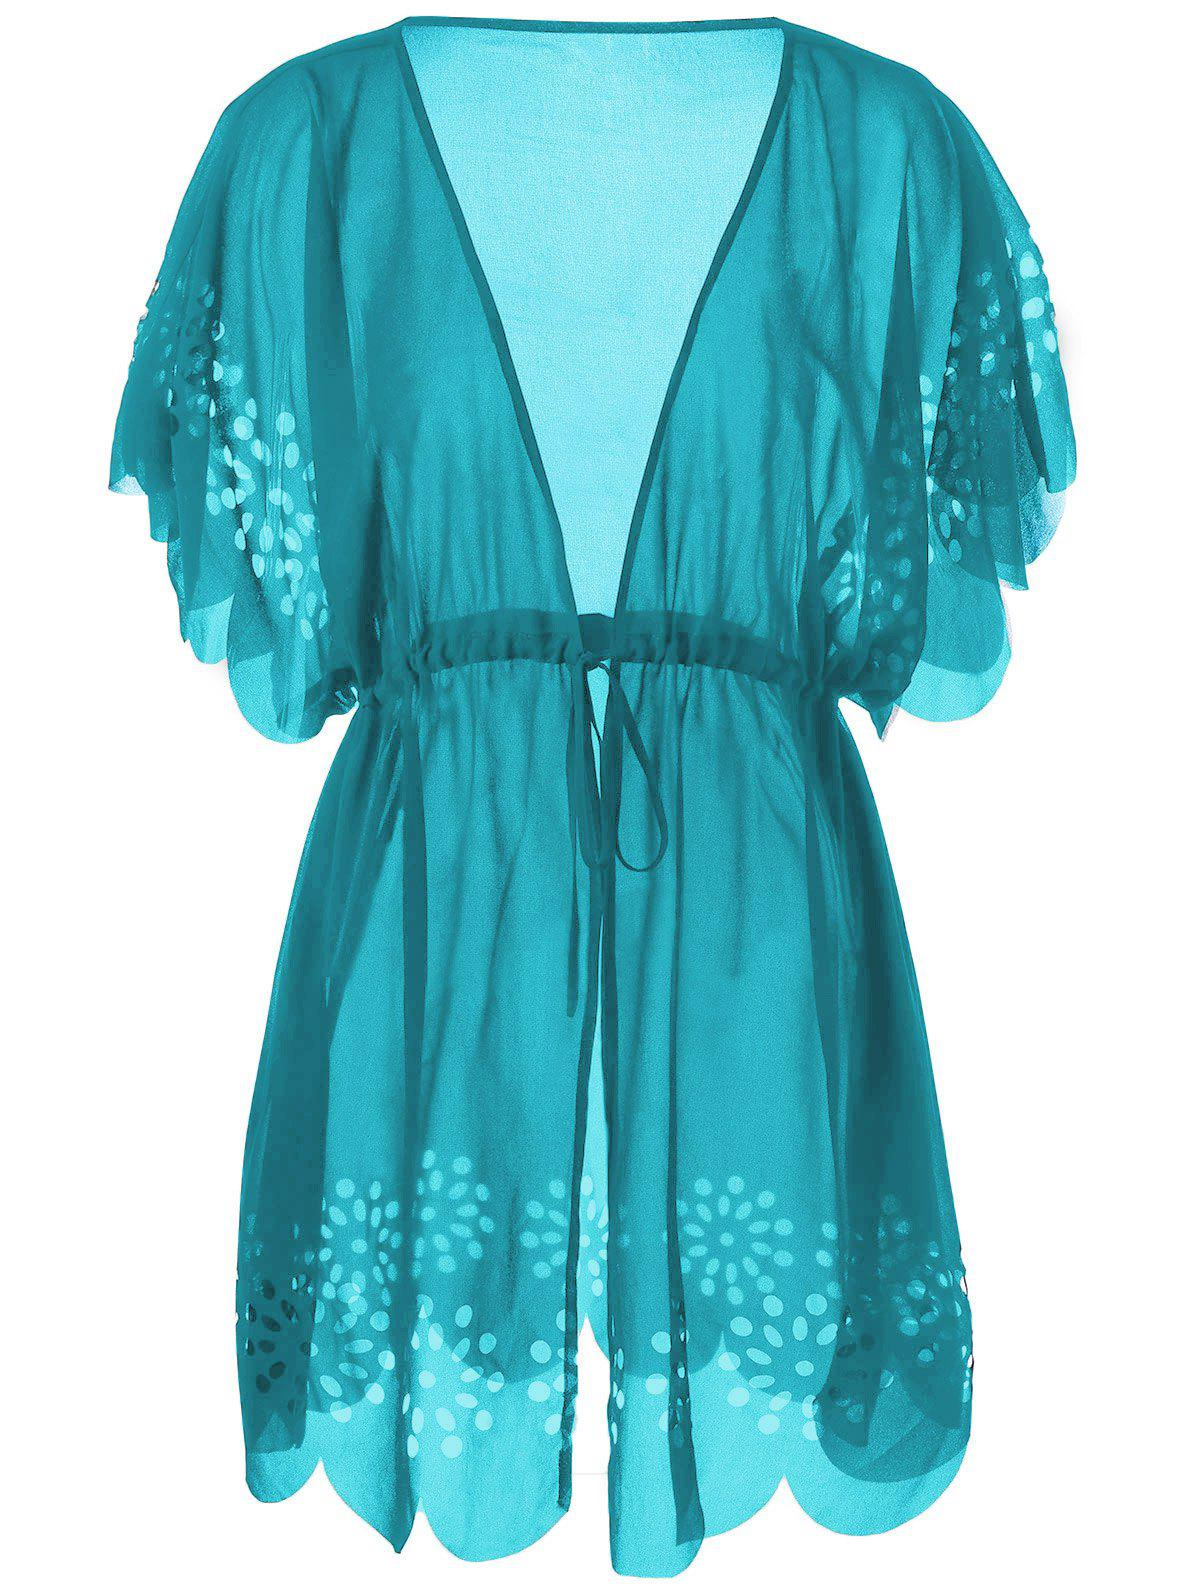 Tie Front Scalloped Plus Size Cover-UpsWOMEN<br><br>Size: 3XL; Color: PEACOCK BLUE; Gender: For Women; Swimwear Type: Cover-Up; Material: Polyester; Pattern Type: Others; Waist: High Waisted; Weight: 0.2600kg; Package Contents: 1 x Cover-Ups;